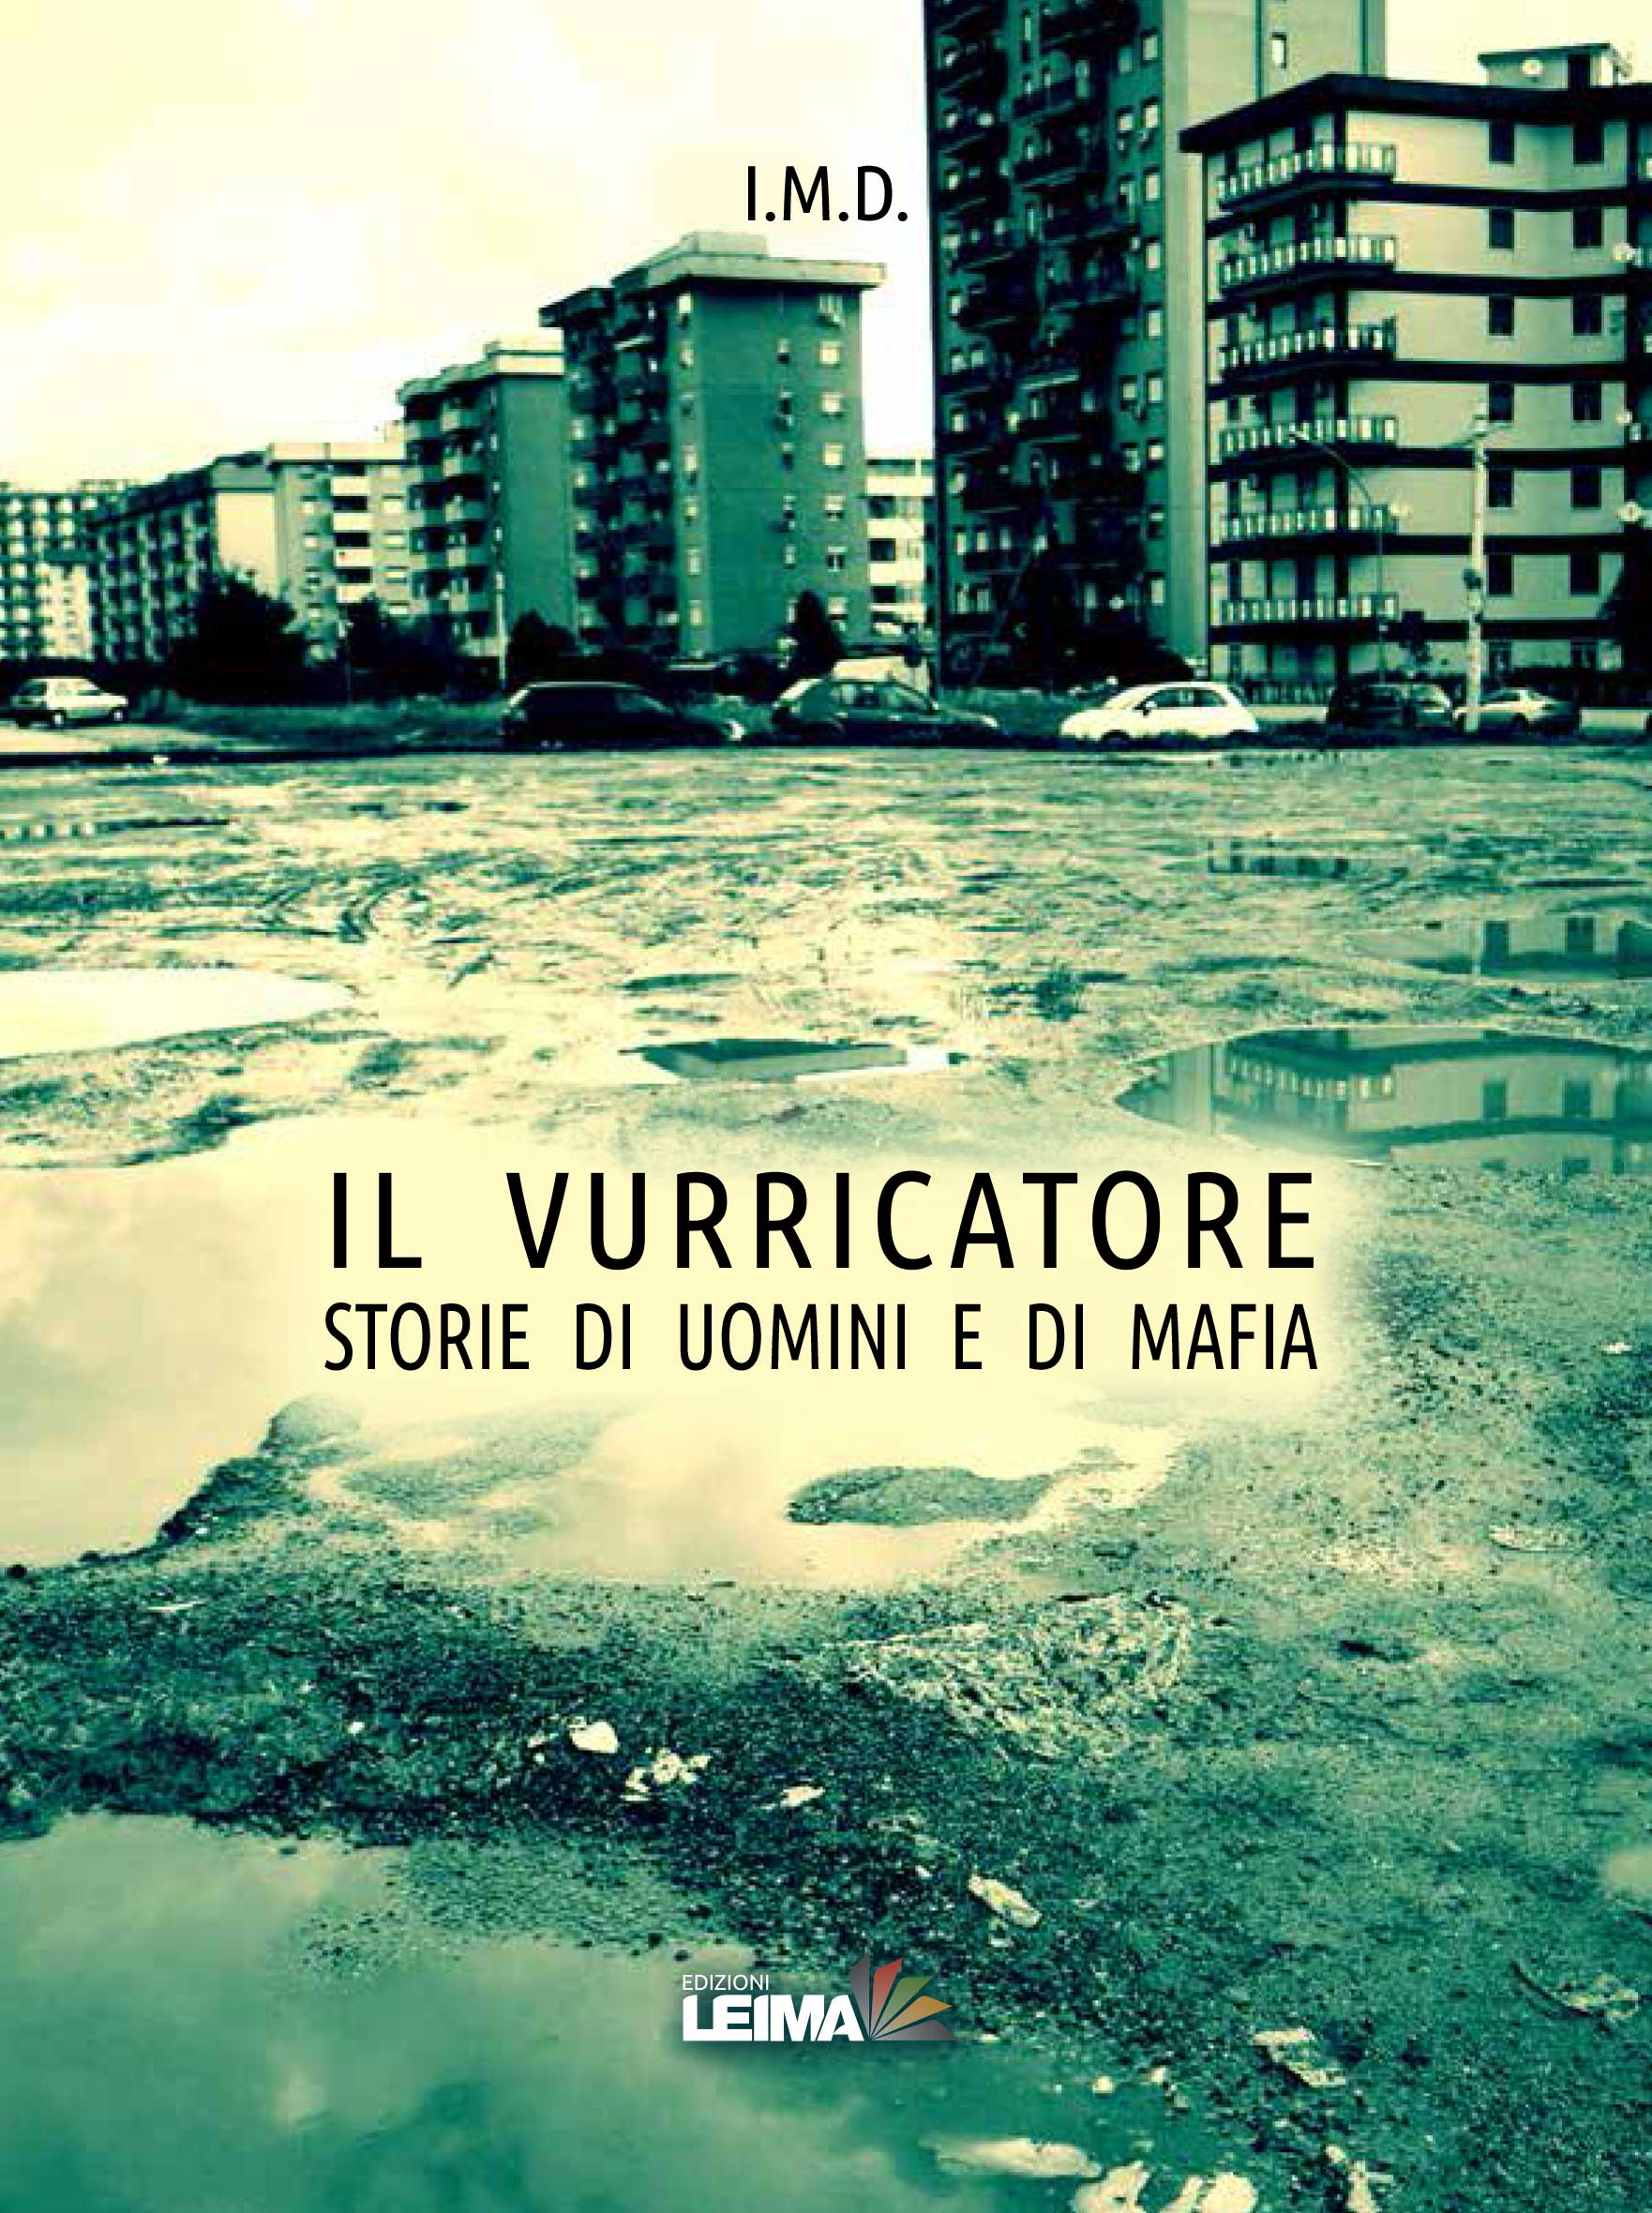 IL VURRICATORE – STORIE DI UOMINI E DI MAFIA  – Il Vurricatore – Stories of men and Mafia